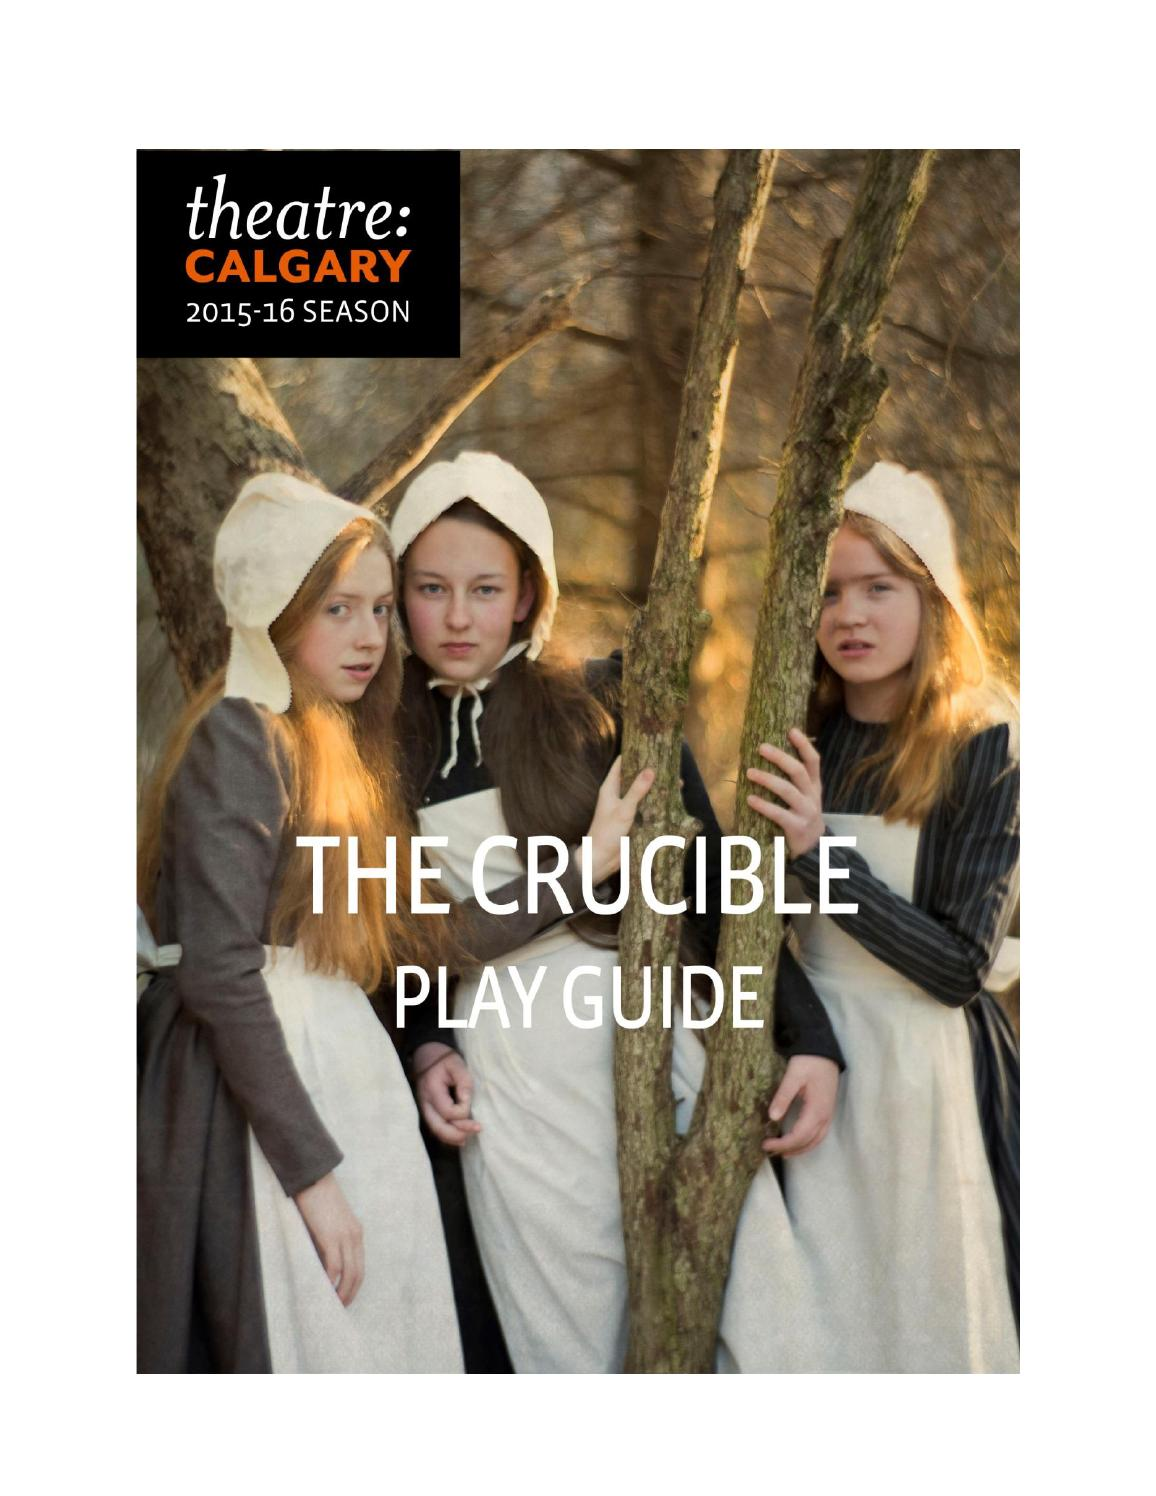 the failures of abigail in the crucible a play by arthur miller